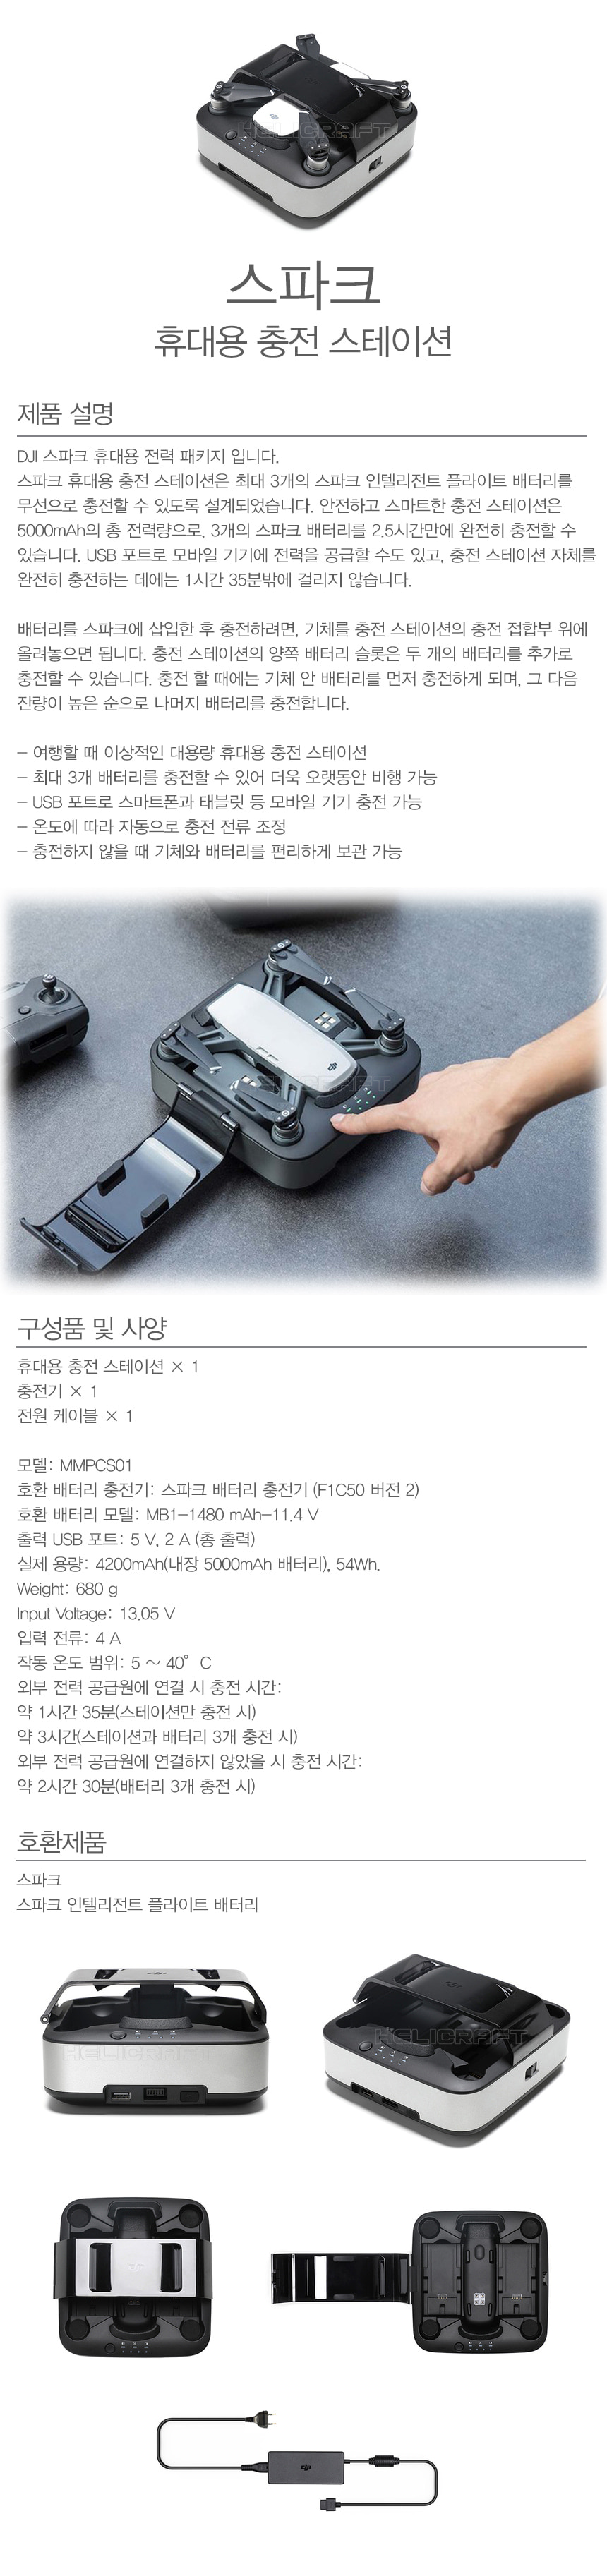 DJI 스파크 휴대용 충전 스테이션 DJI Spark Portable Charing Station part26